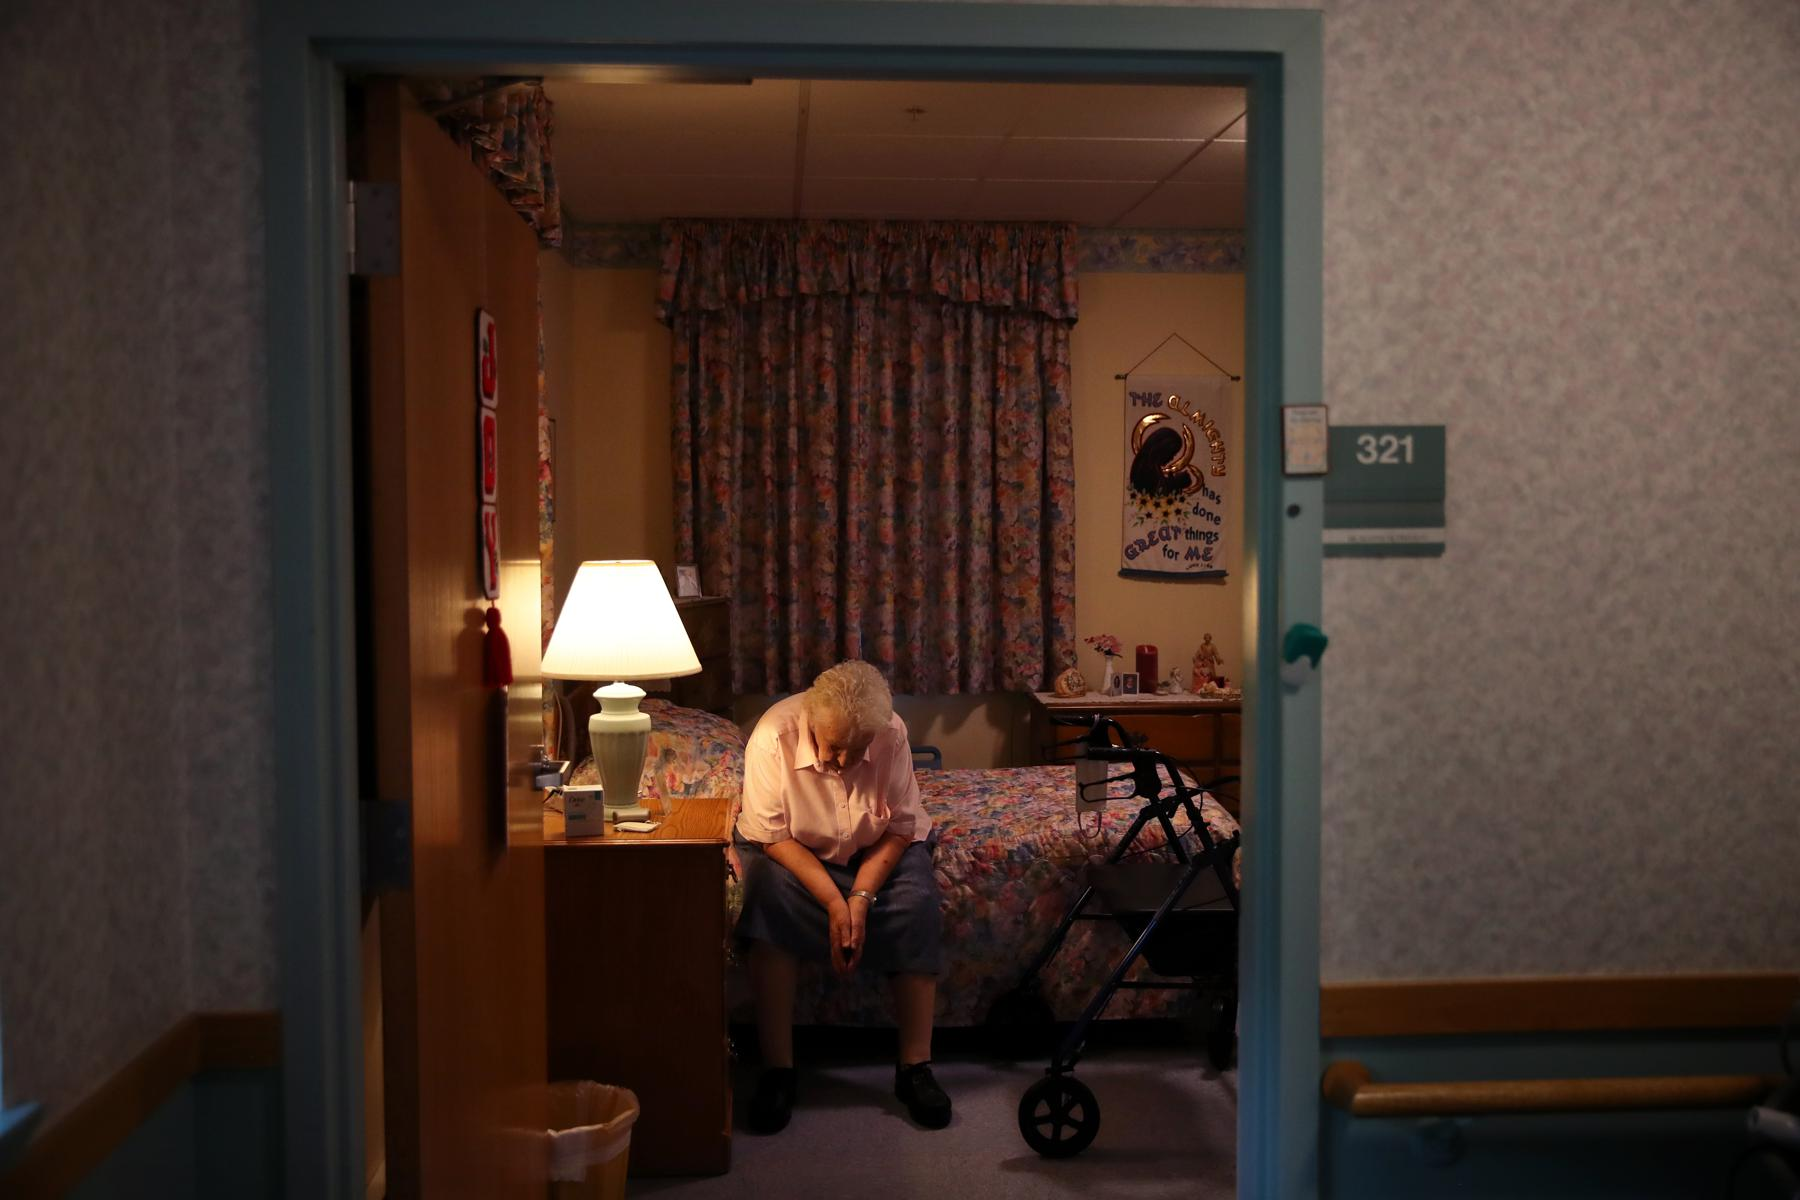 An Inside Look At How Covid-19 Is Driving An Epidemic Of Loneliness In Nursing Homes